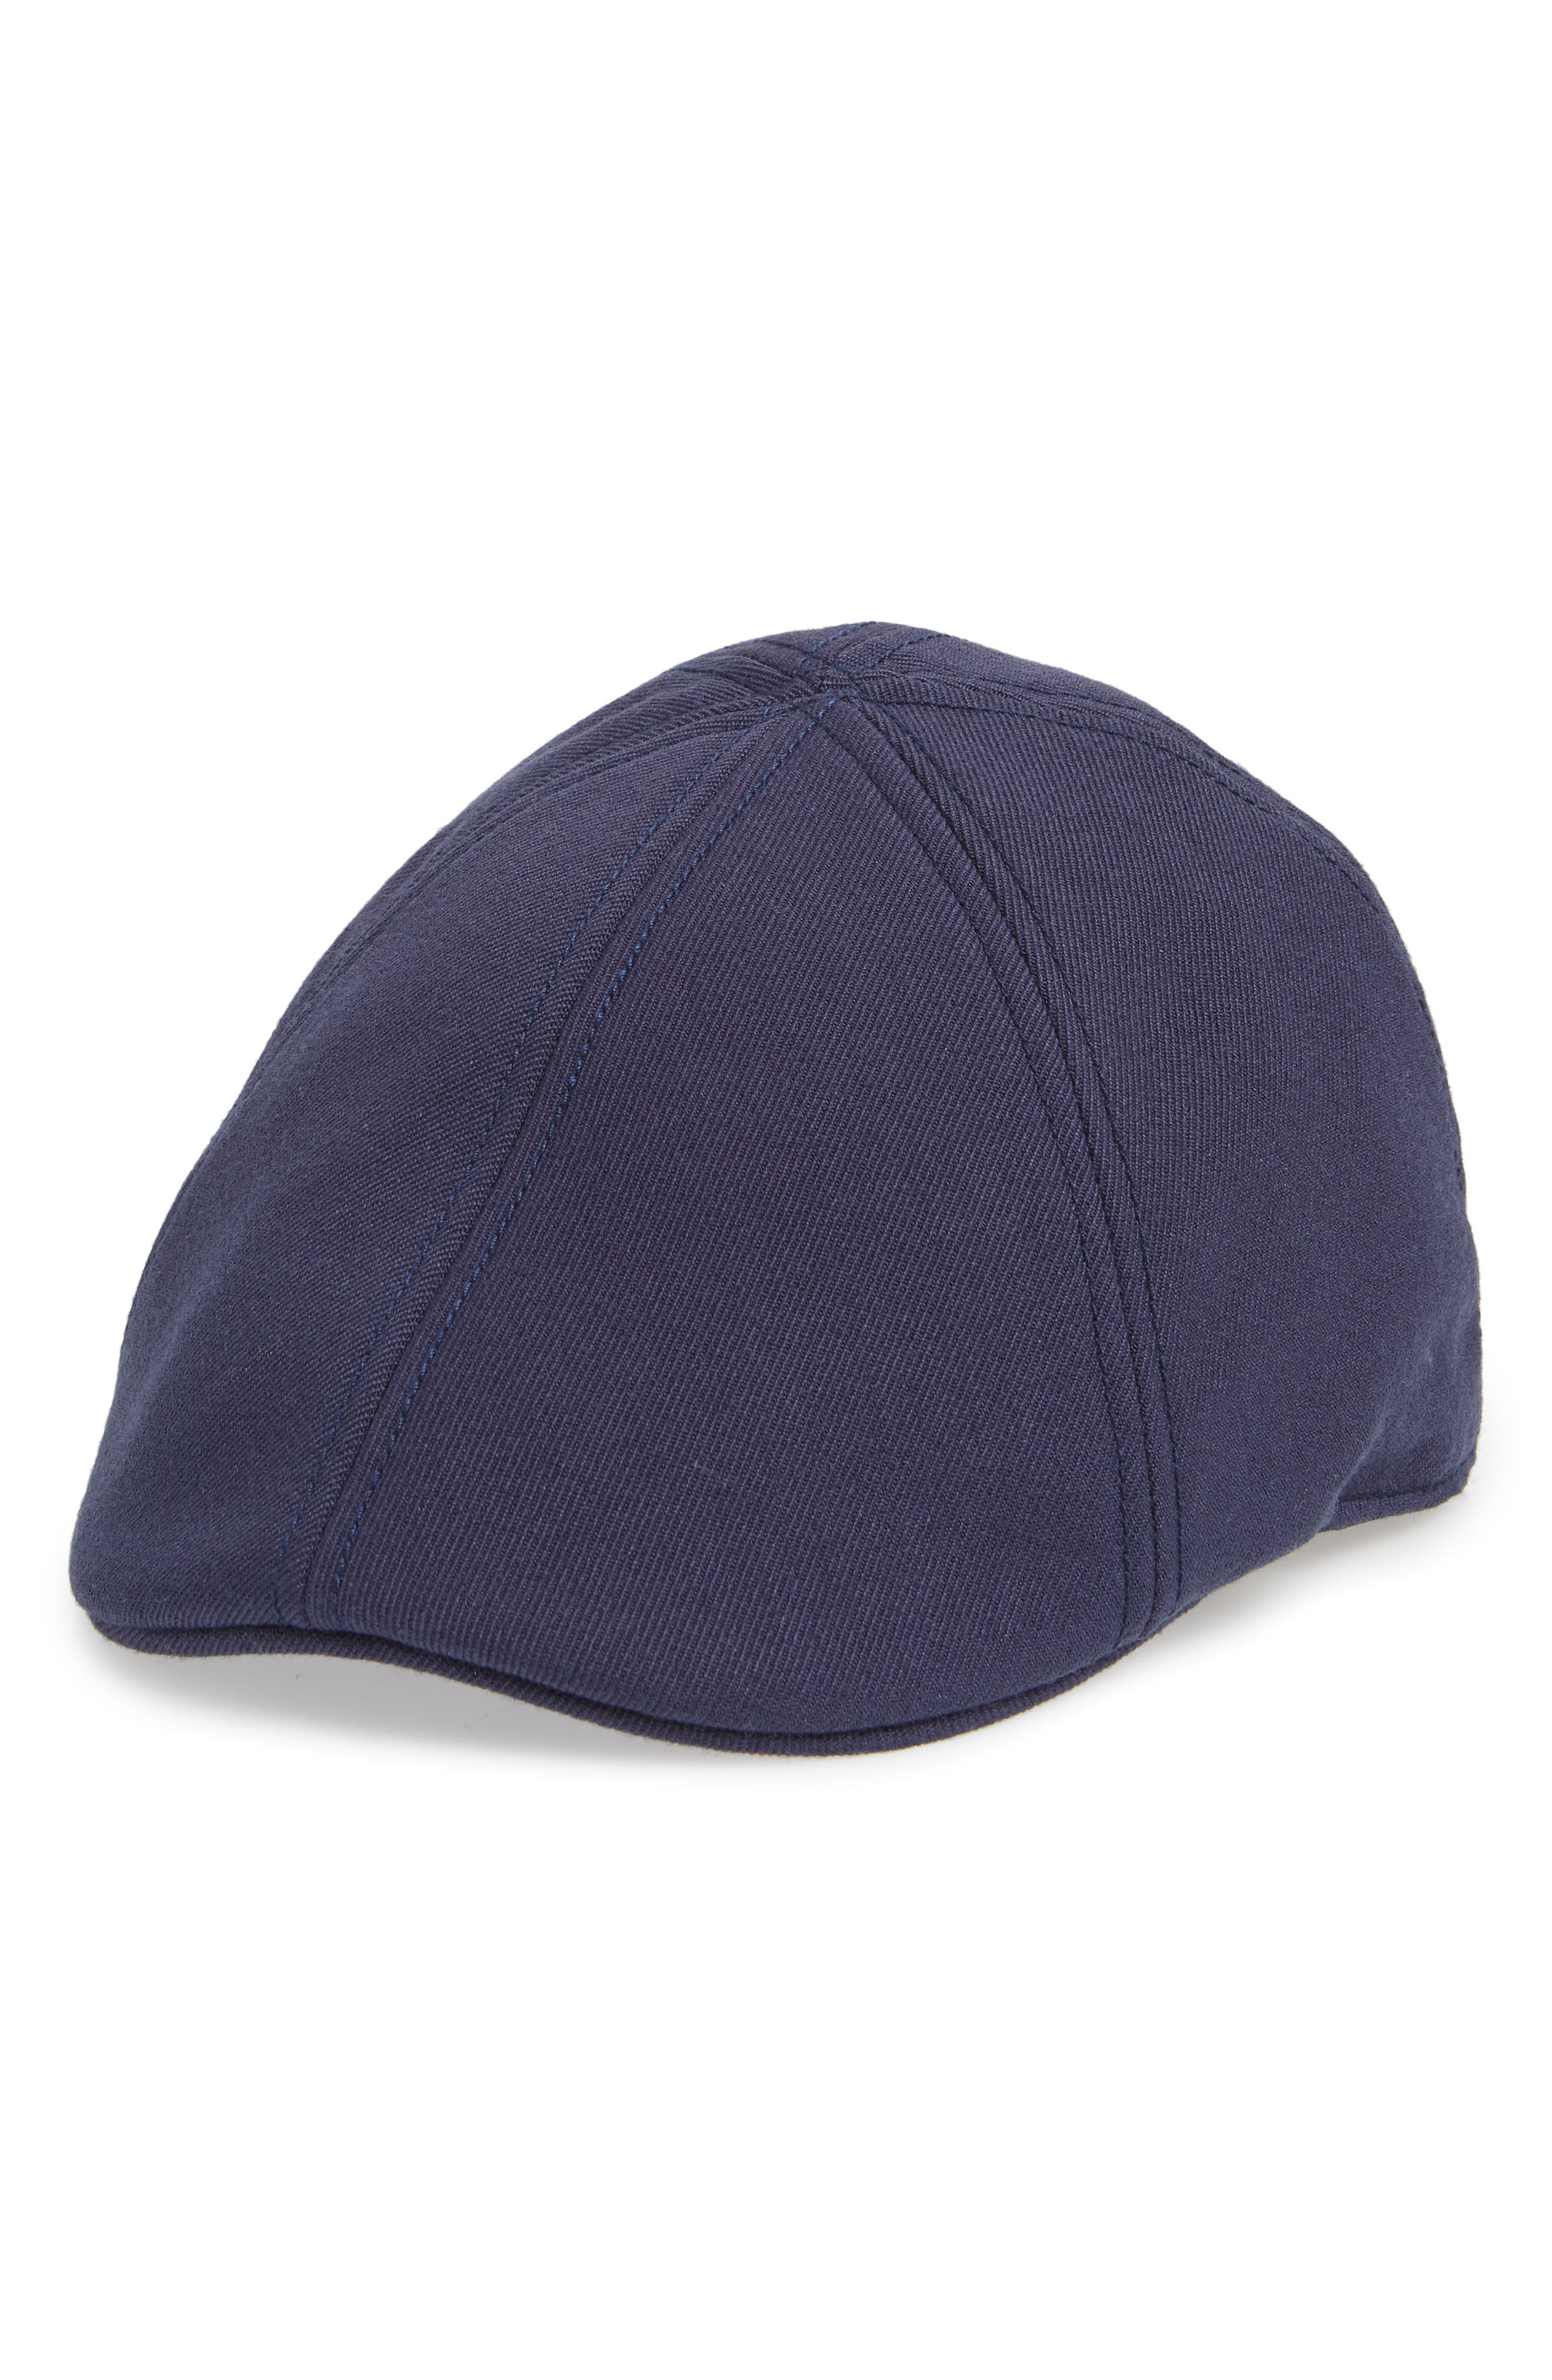 Old Town Driving Cap,                             Main thumbnail 1, color,                             BLUE